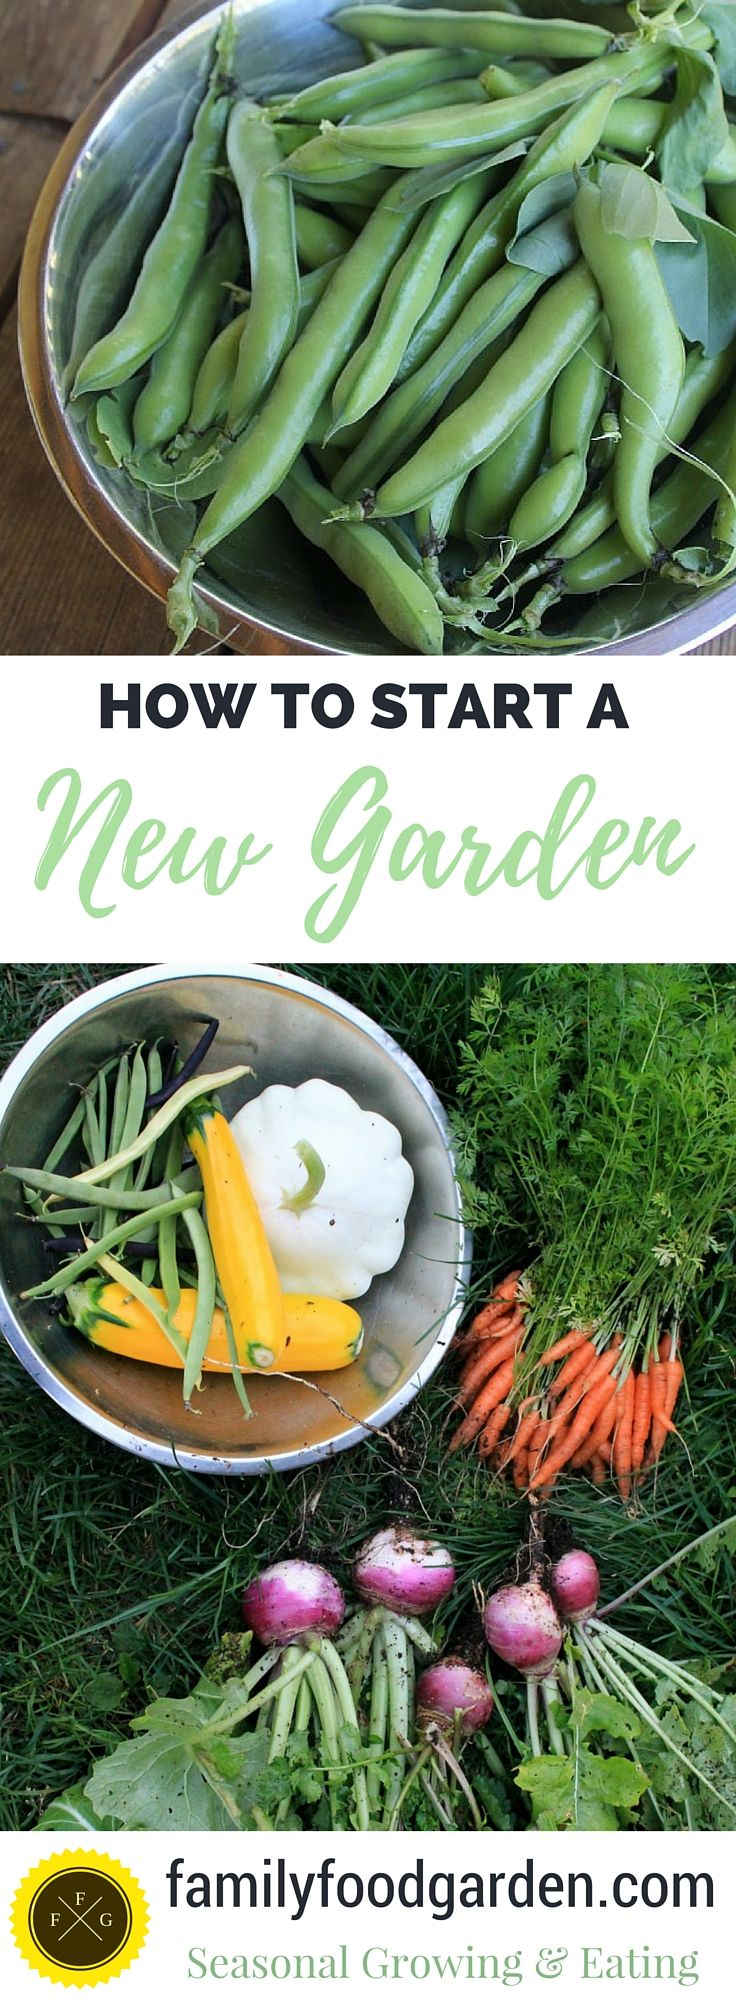 637 best gardening with kids images on pinterest gardening tips